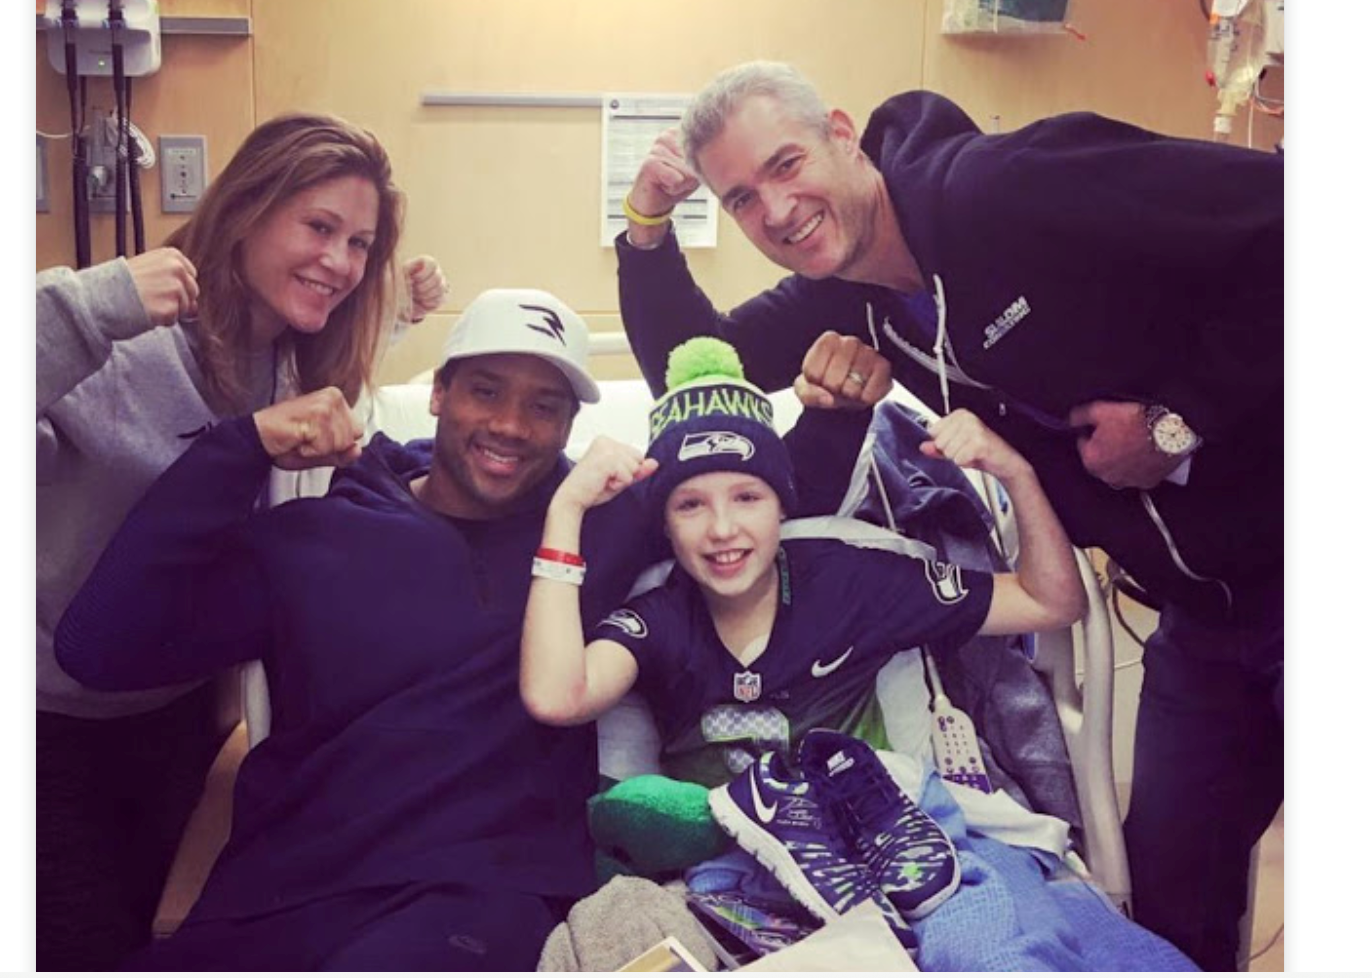 While in the hospital, Avery received a visit from Seahawks quarterback Russell Wilson.